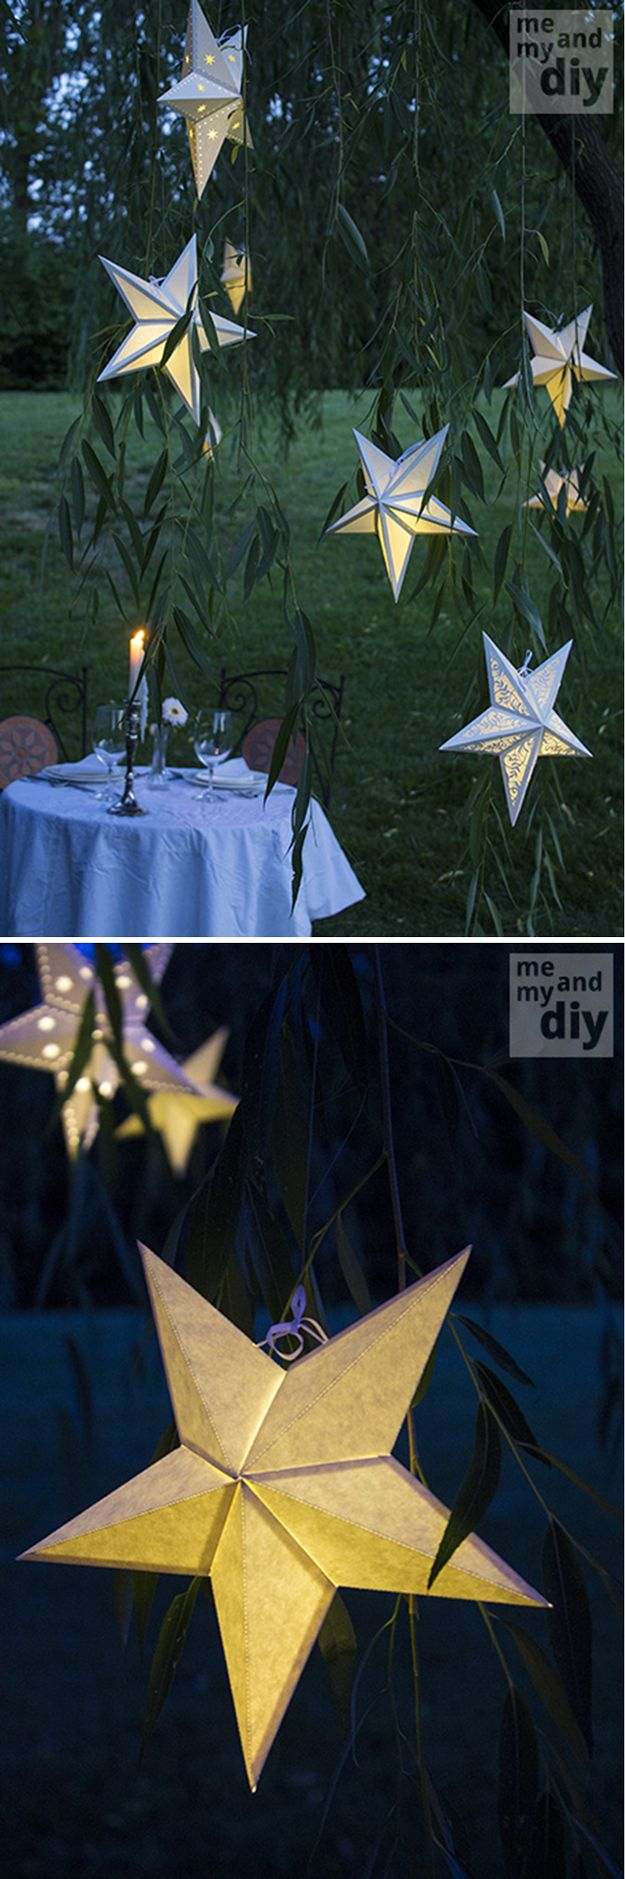 Paper stars how to make 5 pointed 3 d craft thyme - Diy Lighting Ideas